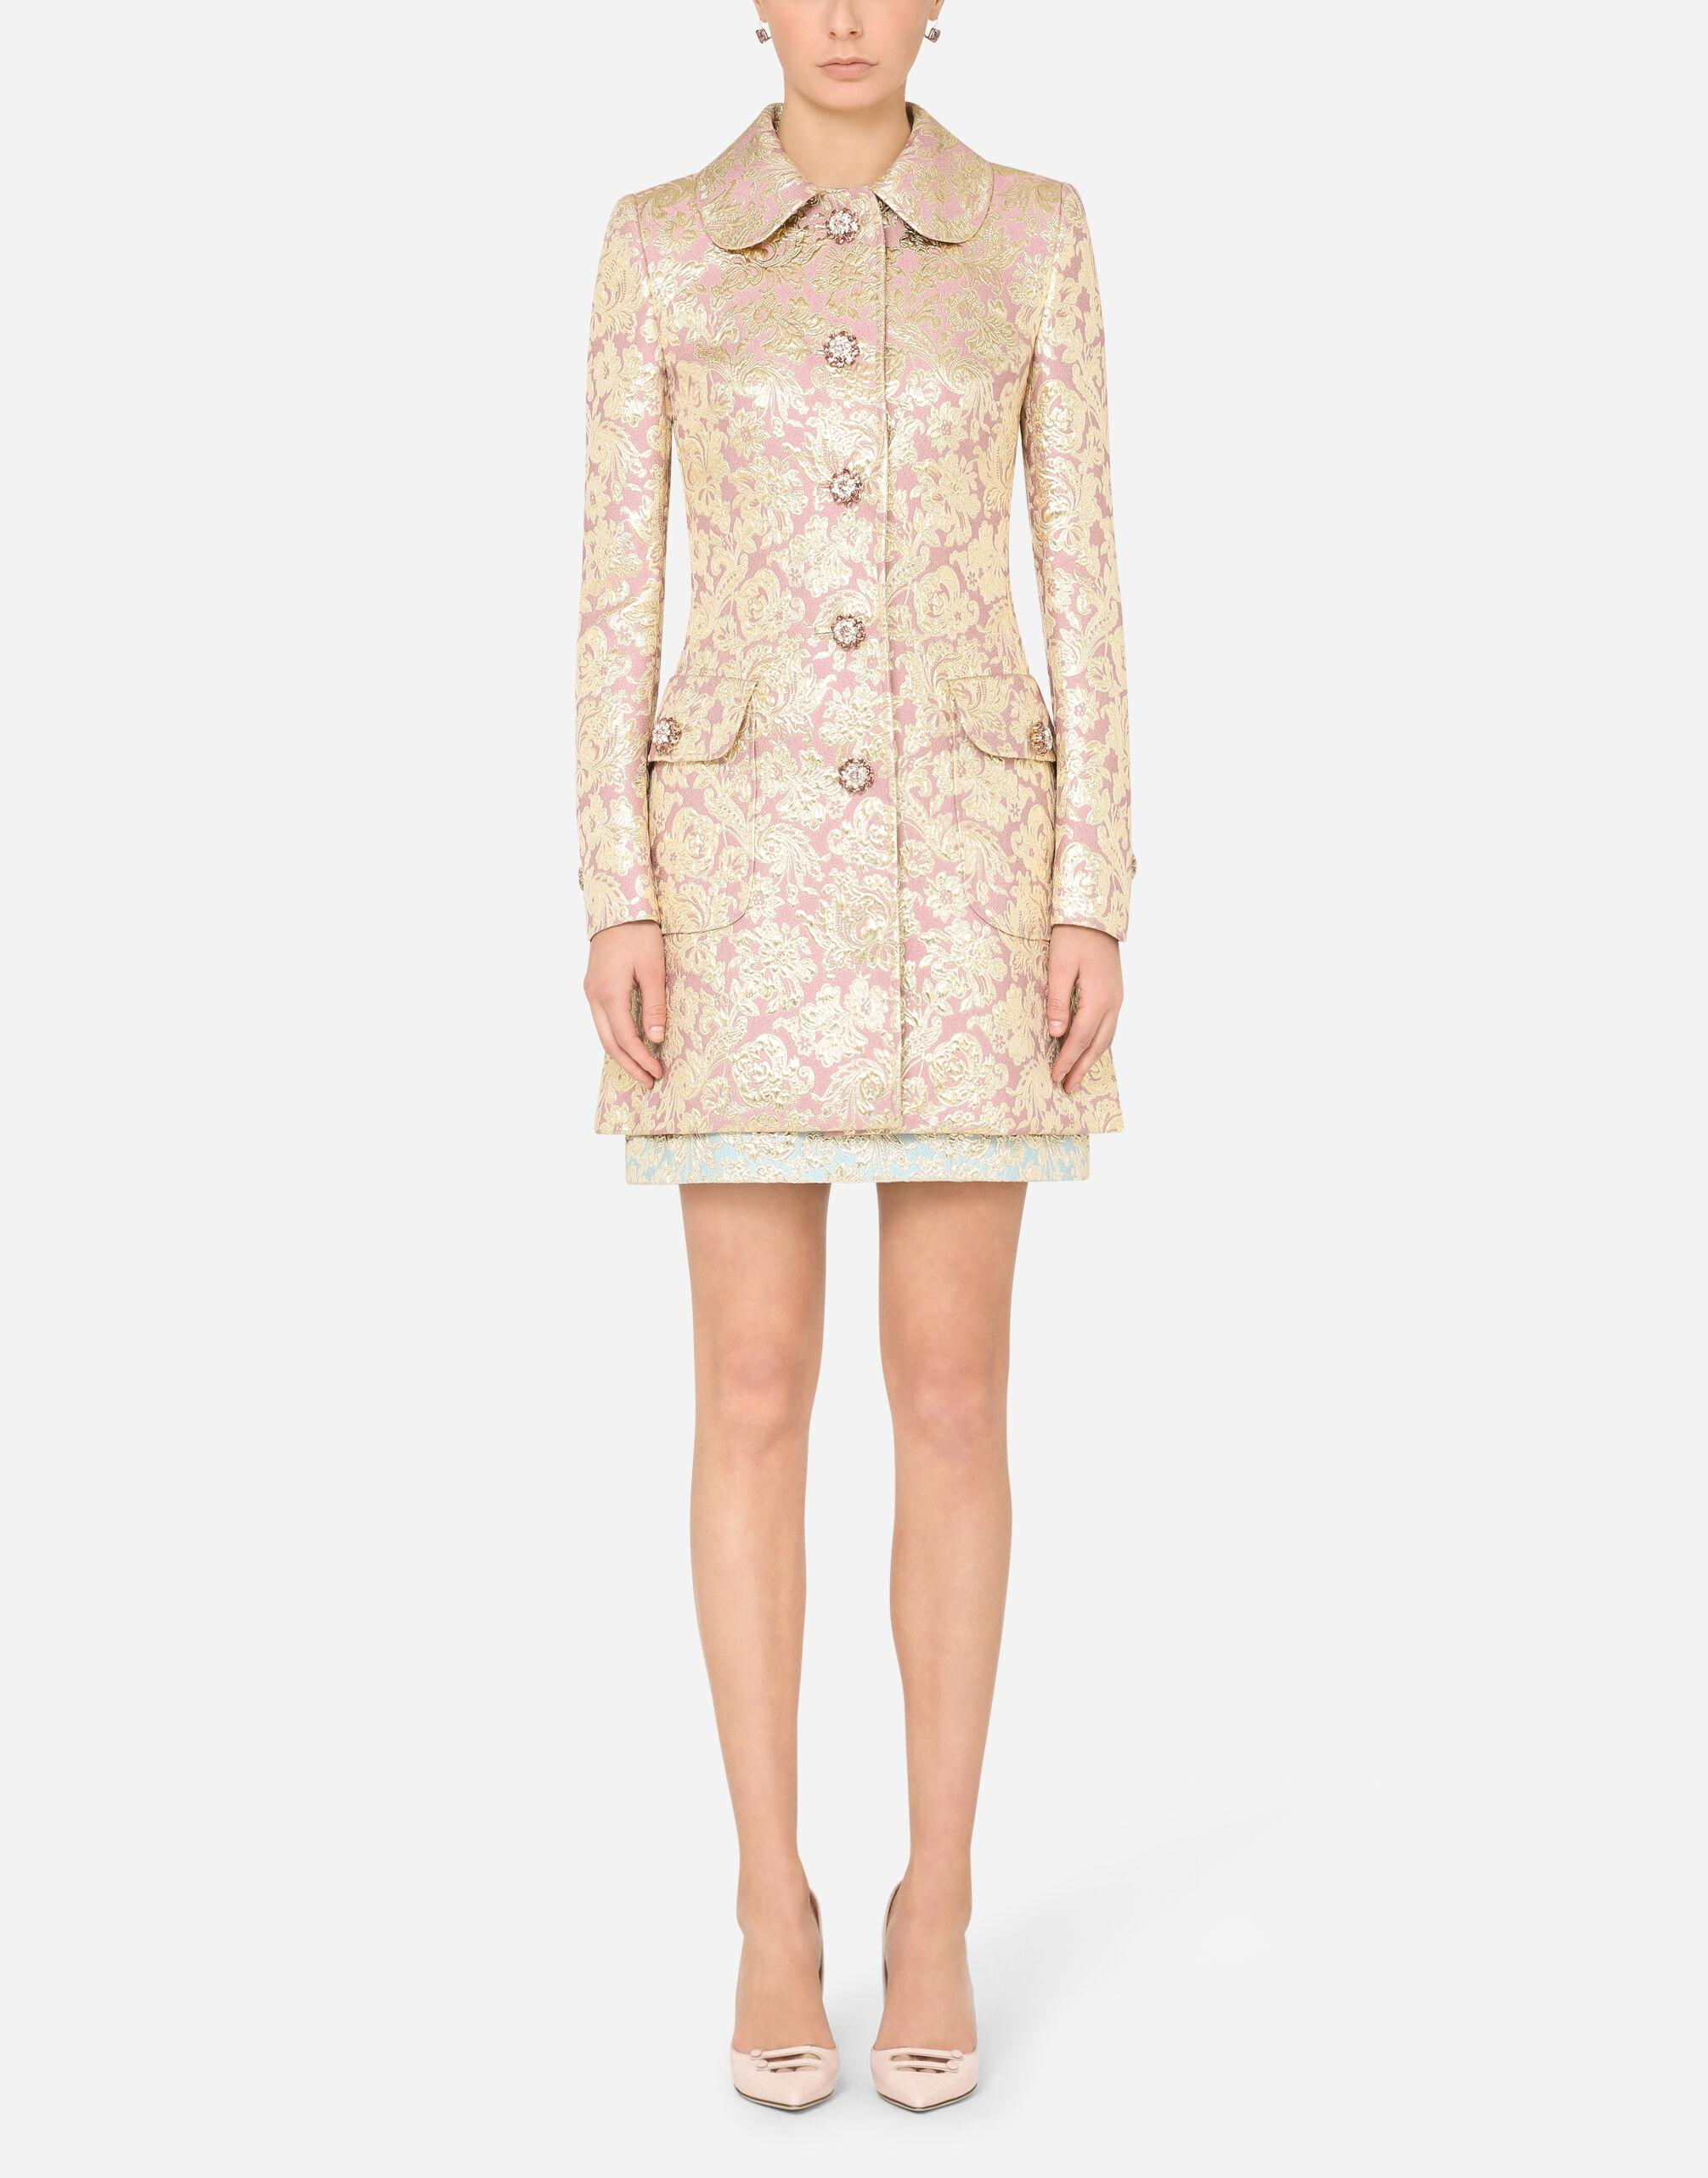 Lamé jacquard coat with bejeweled buttons